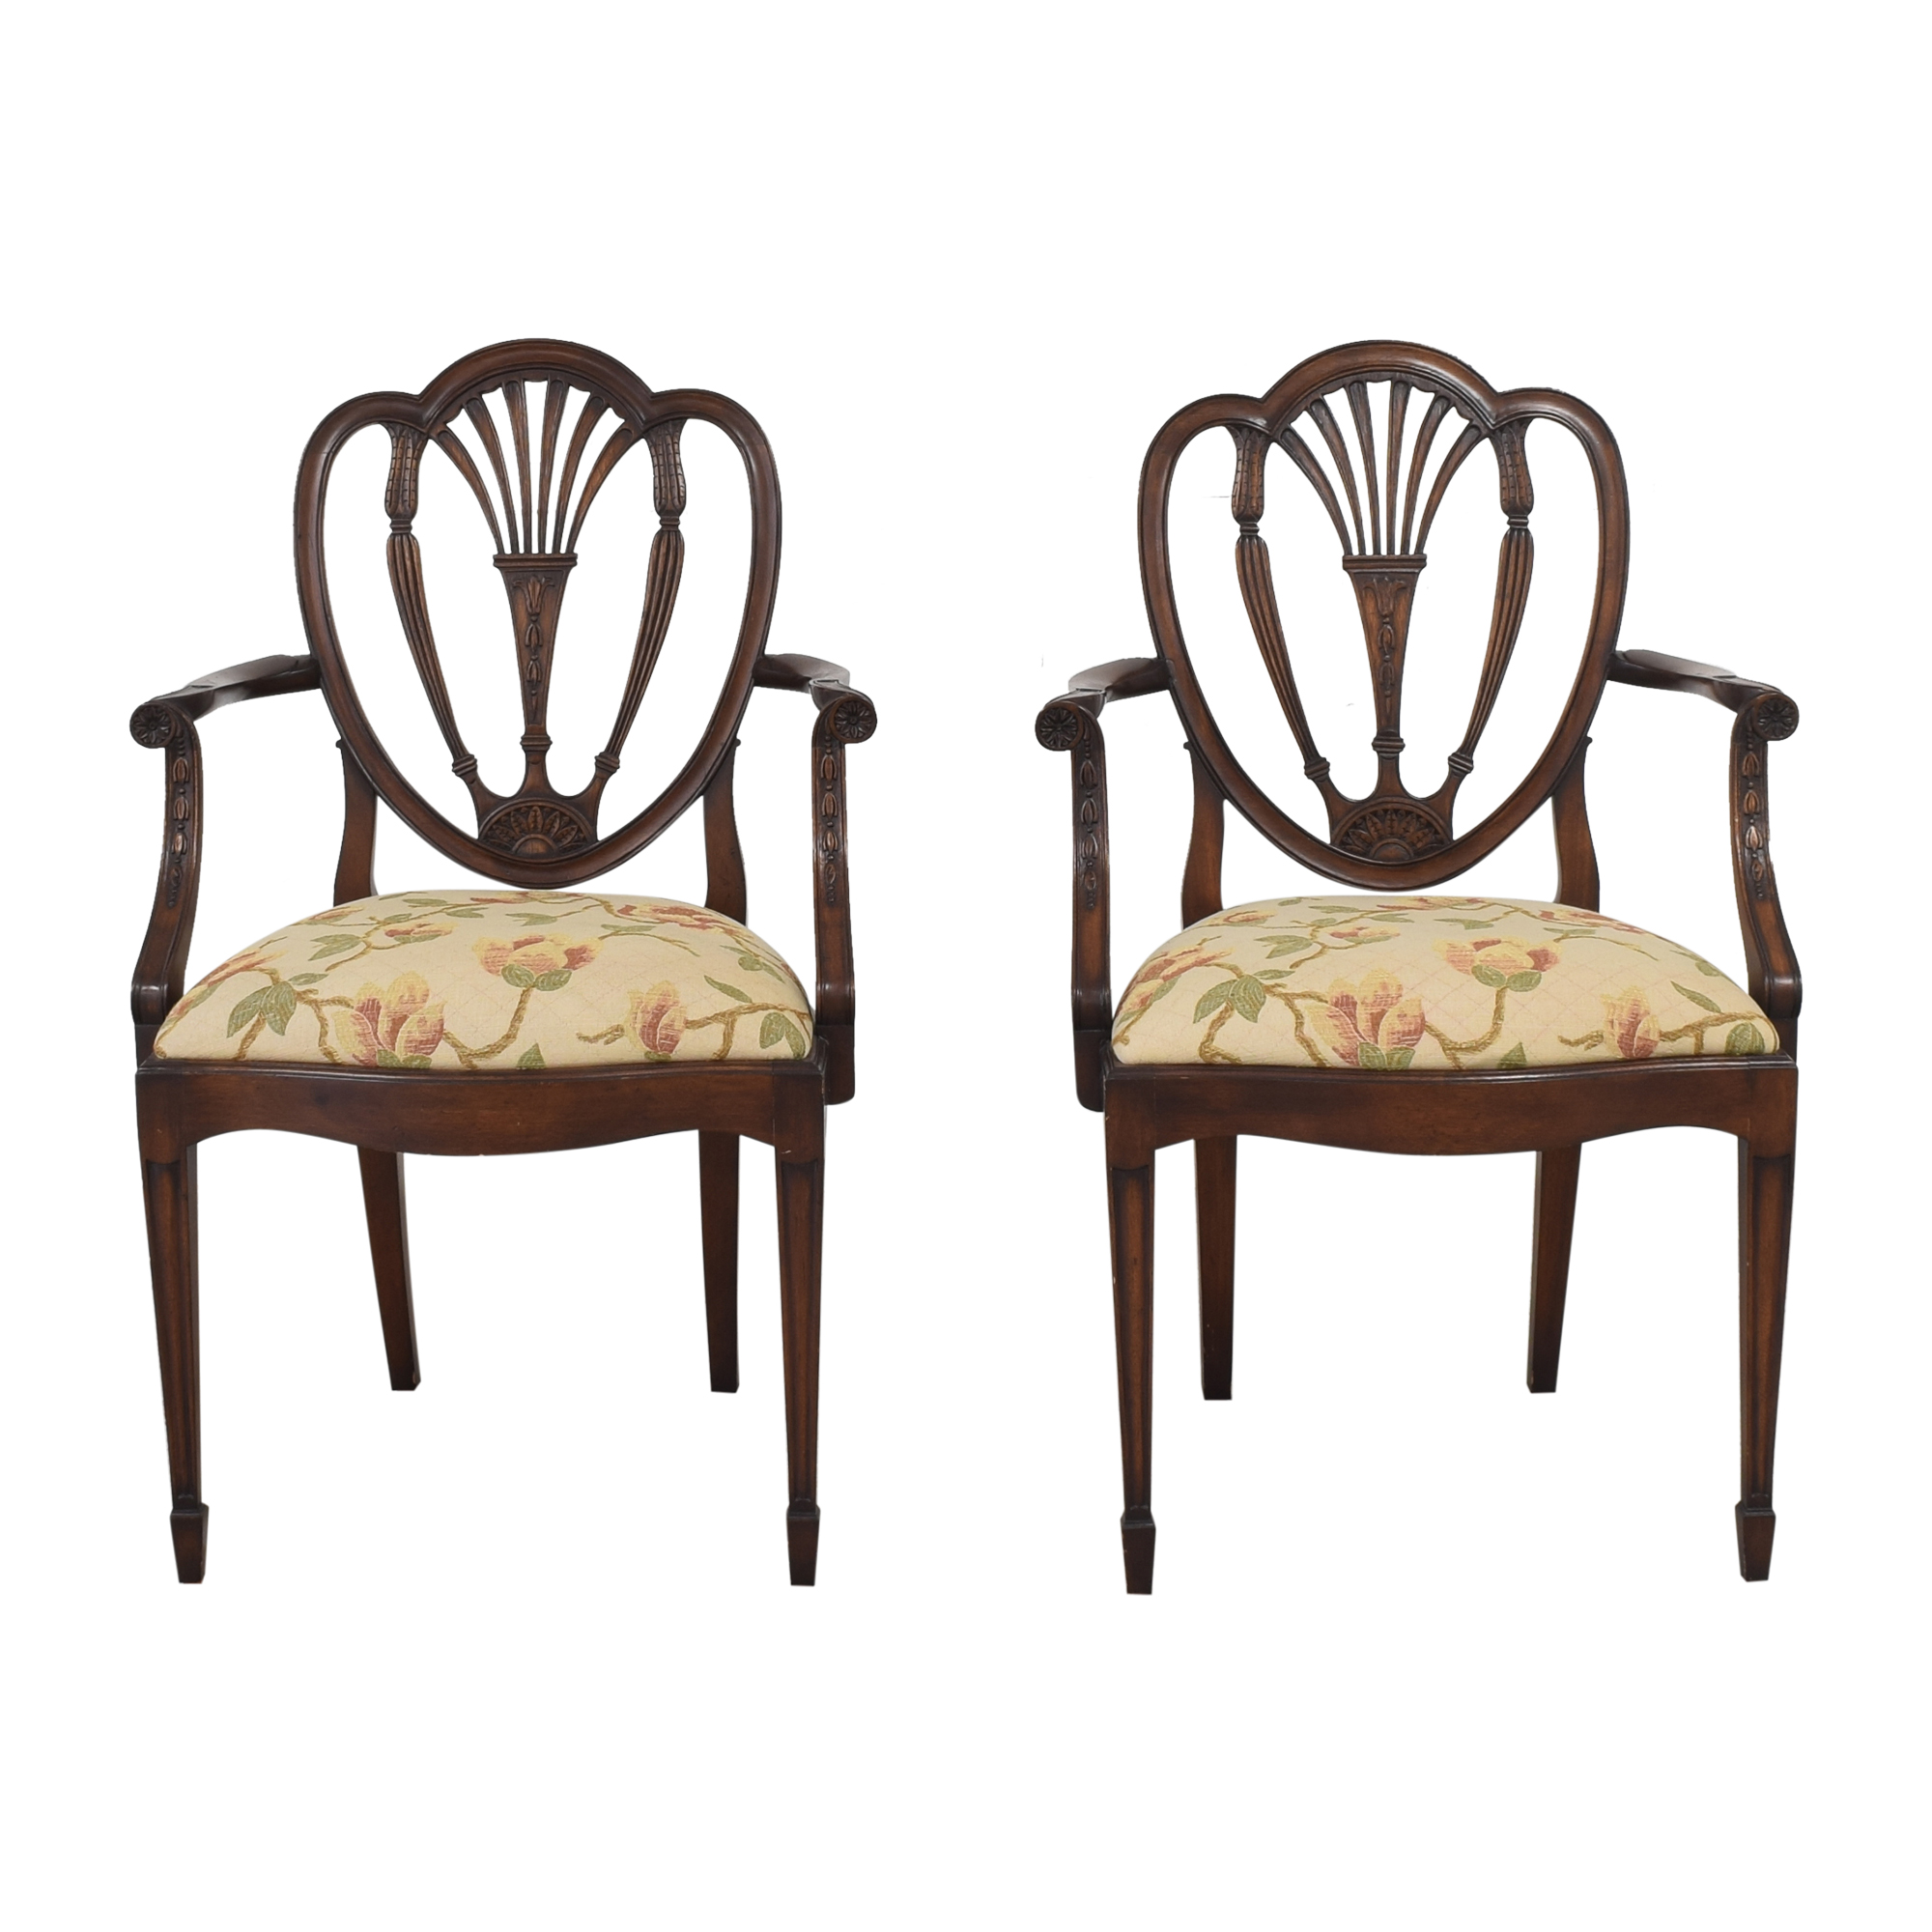 Ardley Hall Ardley Hall Dining Chairs coupon